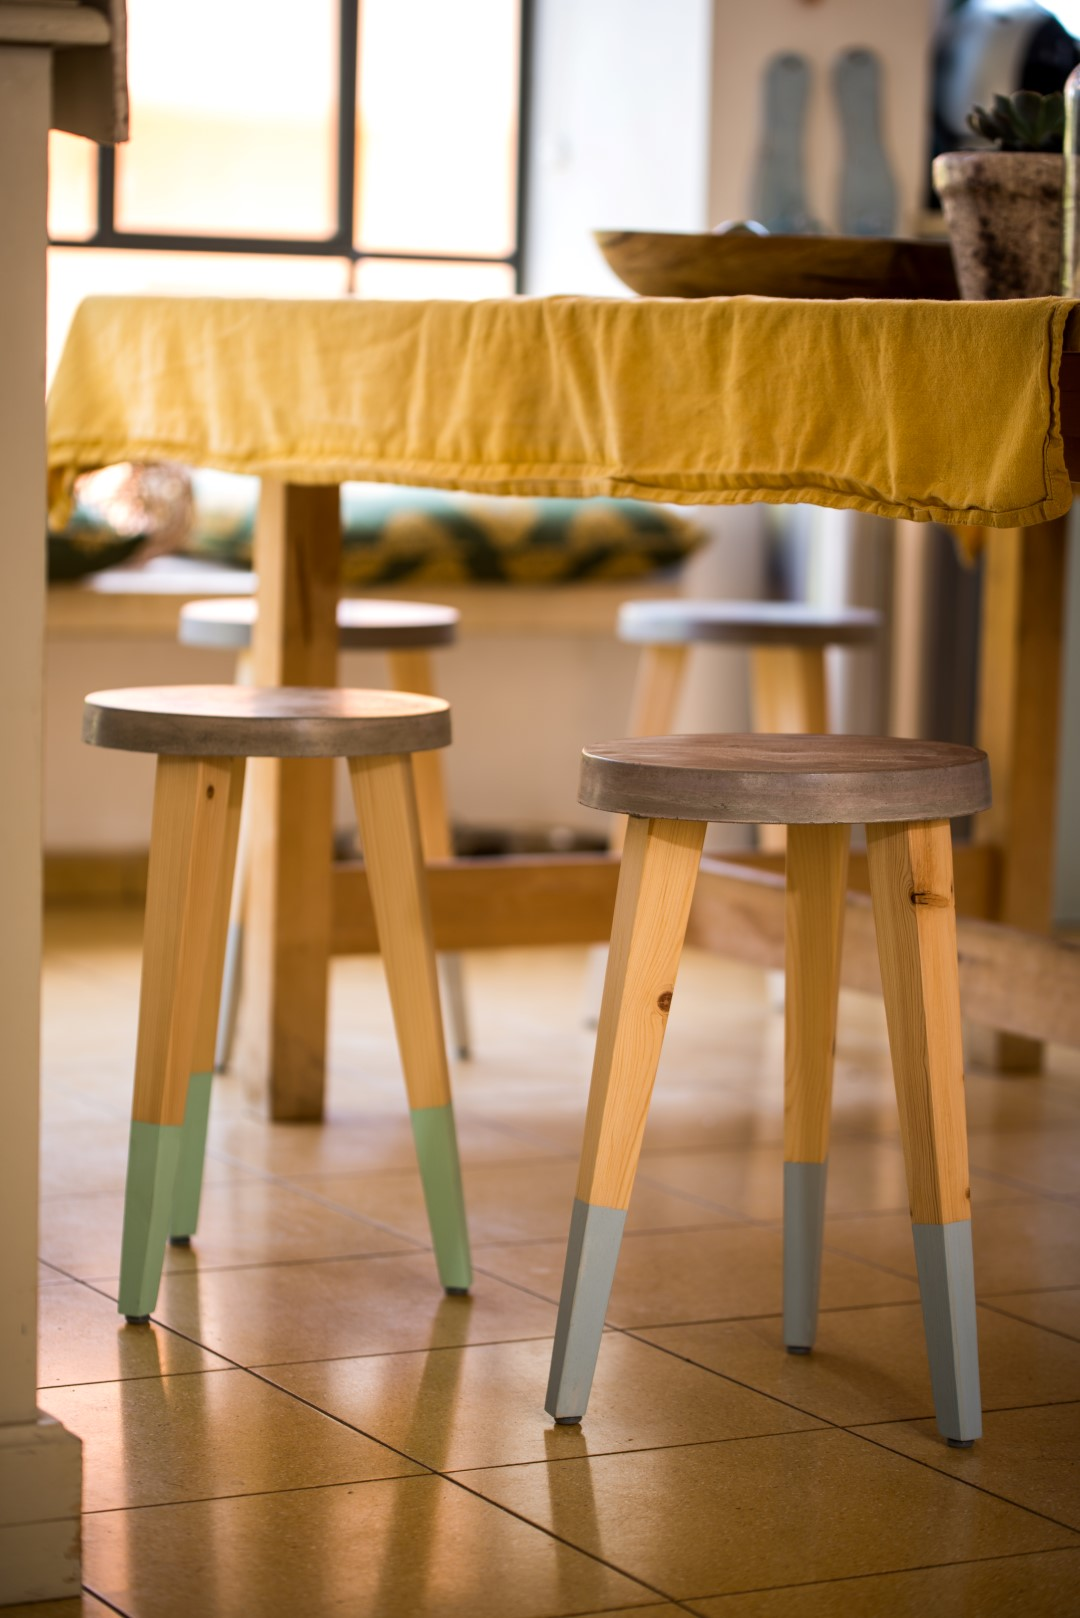 Concrete stool 28